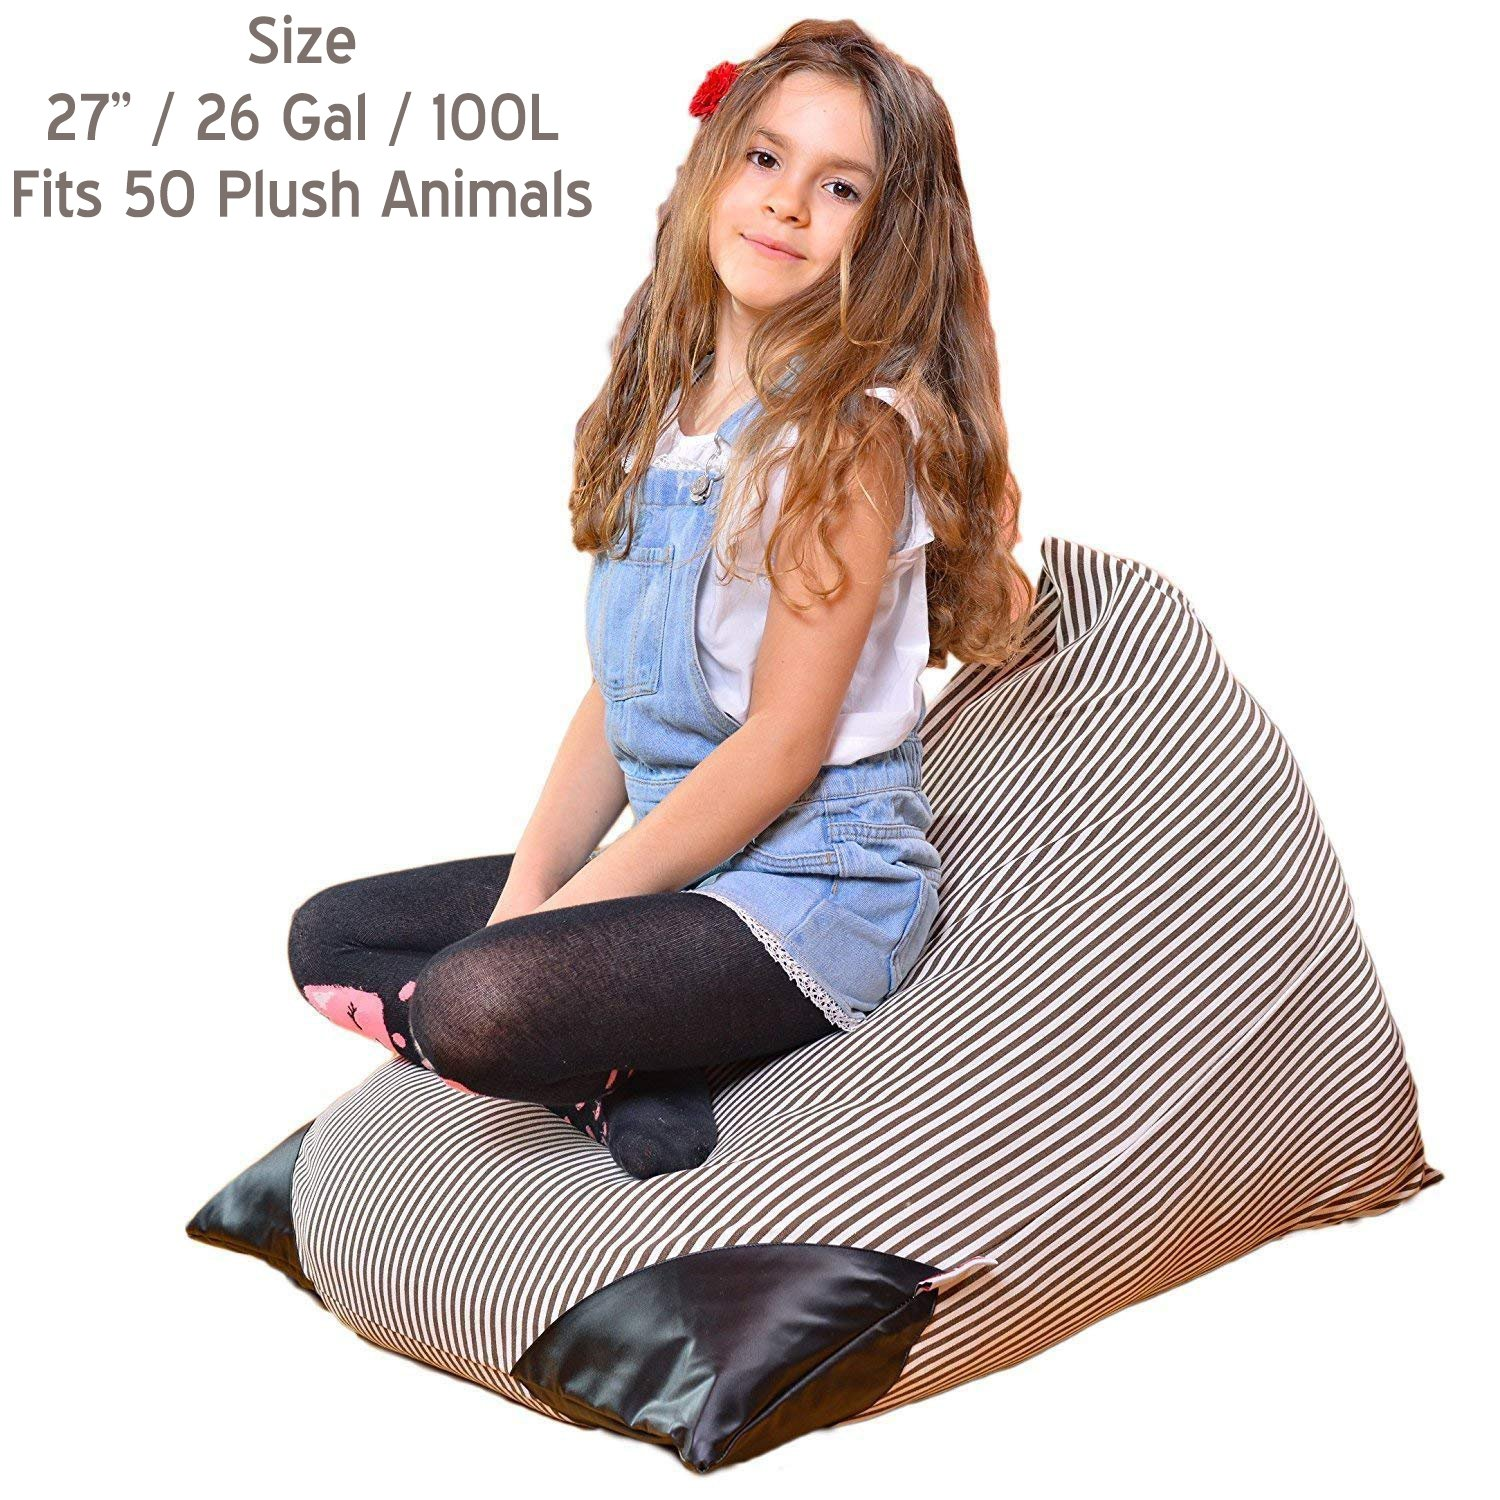 Bean Bags Stuffed Animal Storage Chair | Giant Extra Large Stuffable Toy Organizers Covers Filler Big Pillowfort XL 38 48 27'' Kids Plush Stuff inches 50 100 200 (27'' / 26 Gal / 100L) (Bean Bag) by Kids Evo